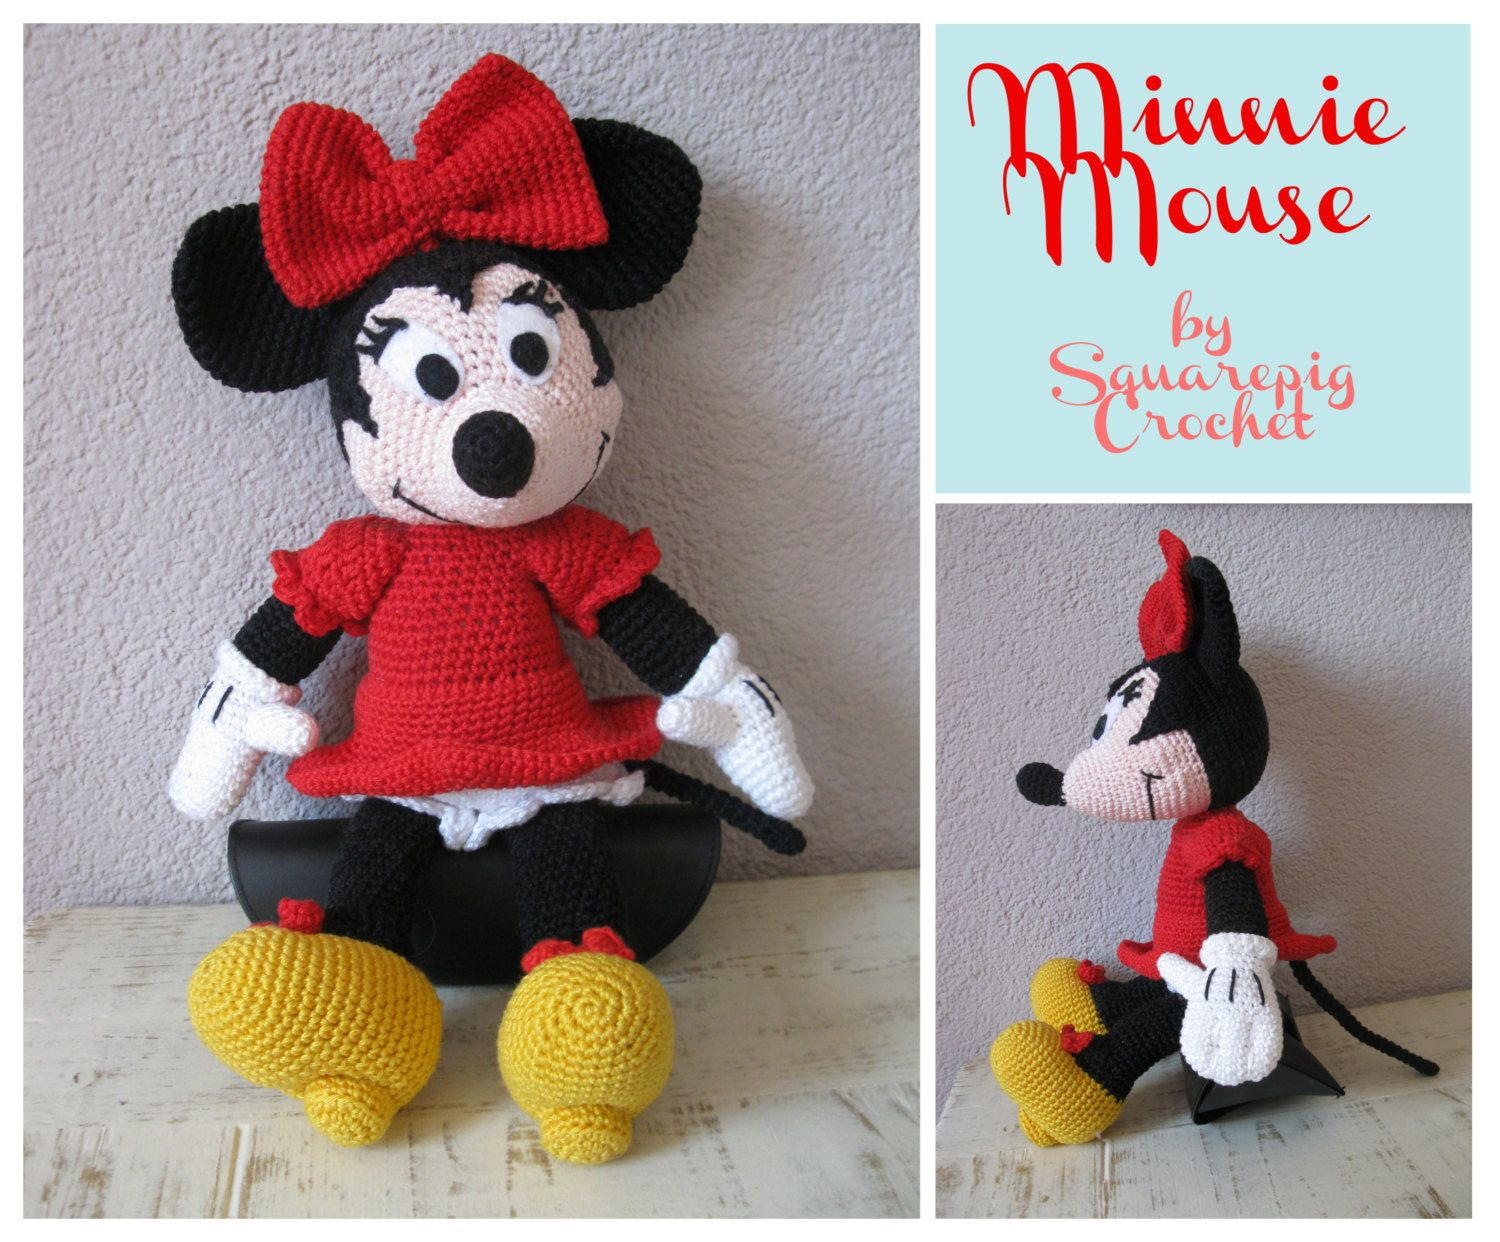 Minnie mouse crochet pattern about 14 inches by squarepigcrochet minnie mouse crochet pattern about 14 inches by squarepigcrochet bankloansurffo Choice Image